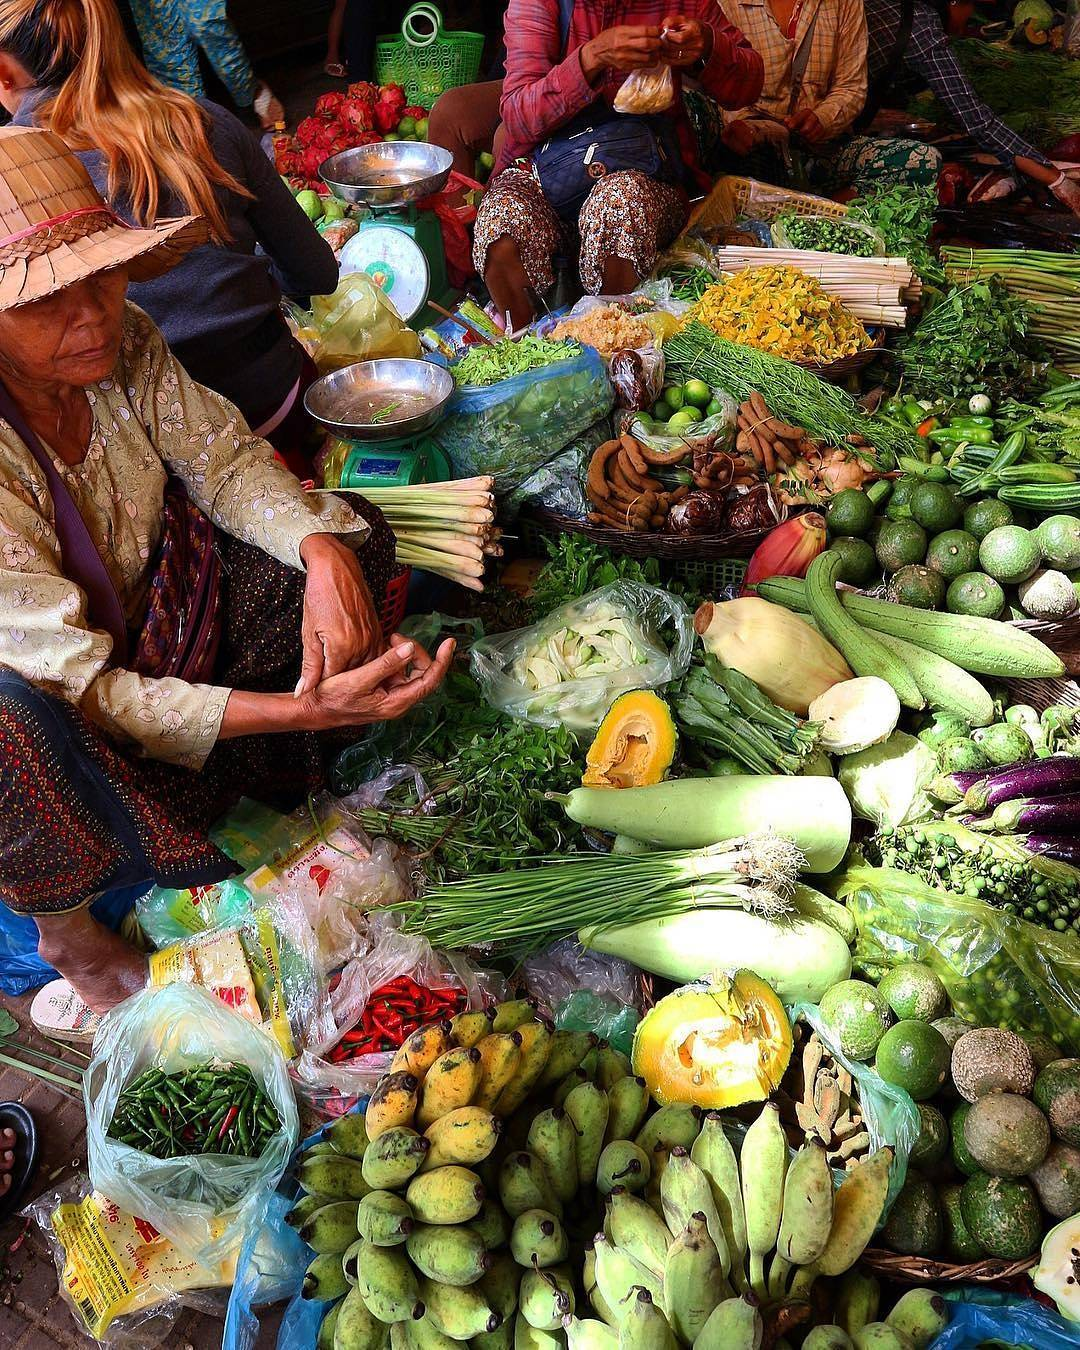 The local markets of Siem Reap are amazing